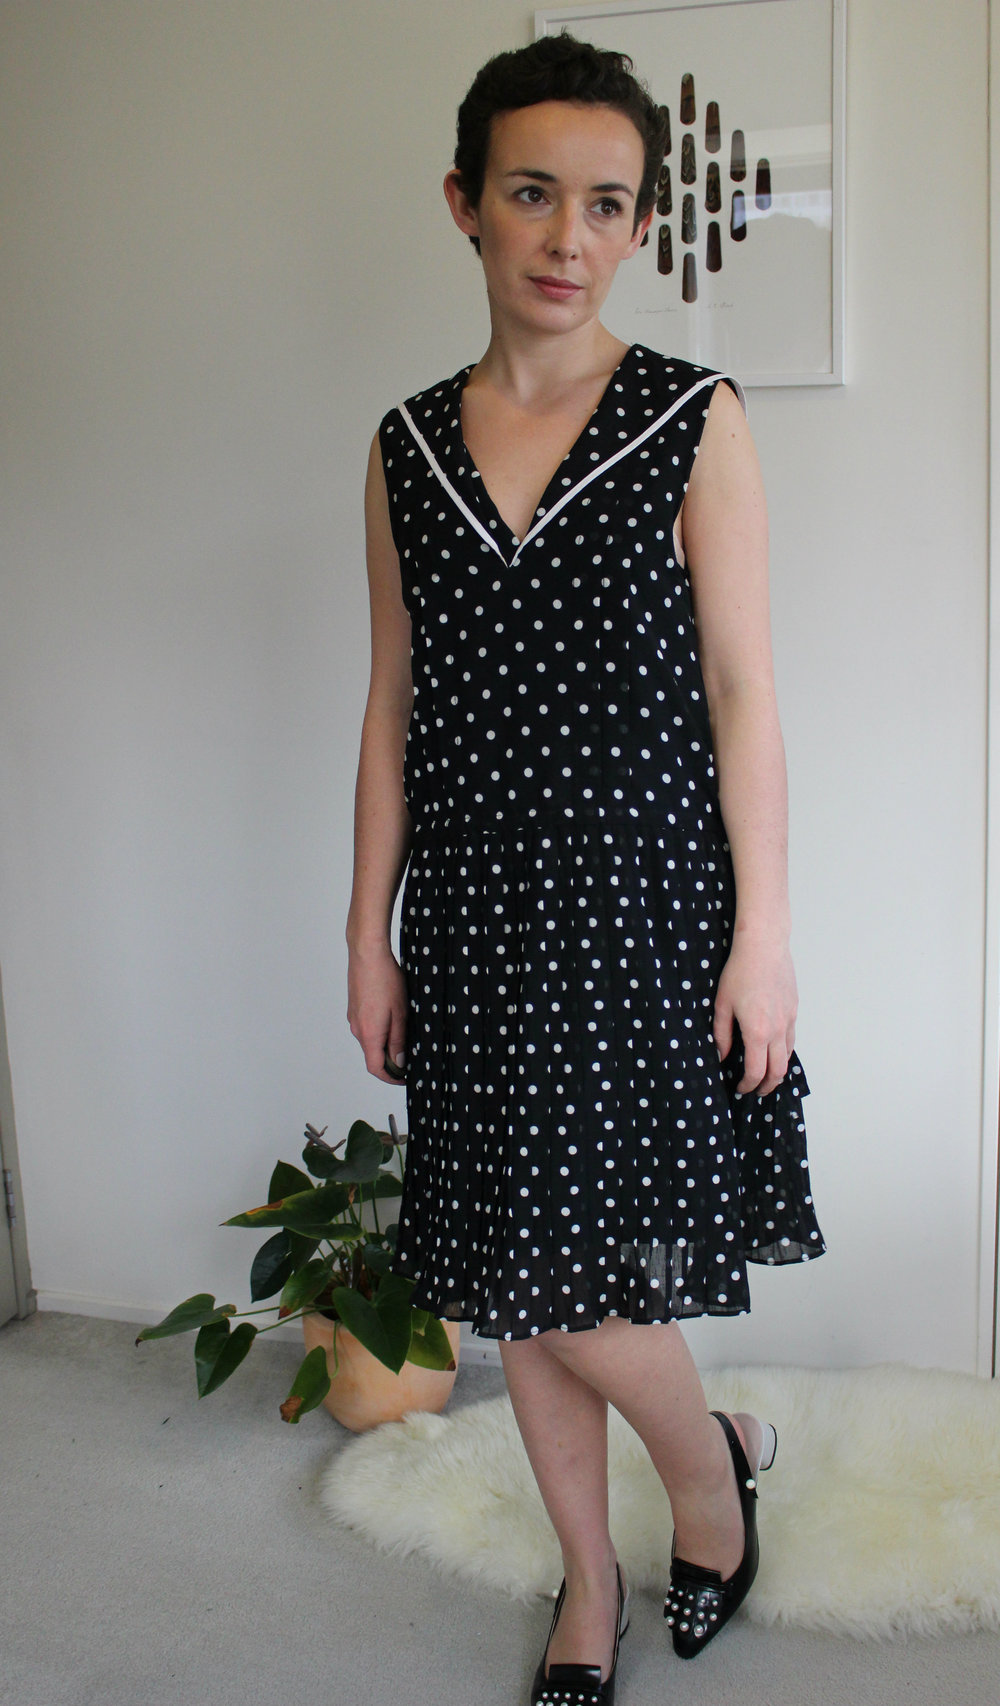 Dress: Smoove Reworked Vintage